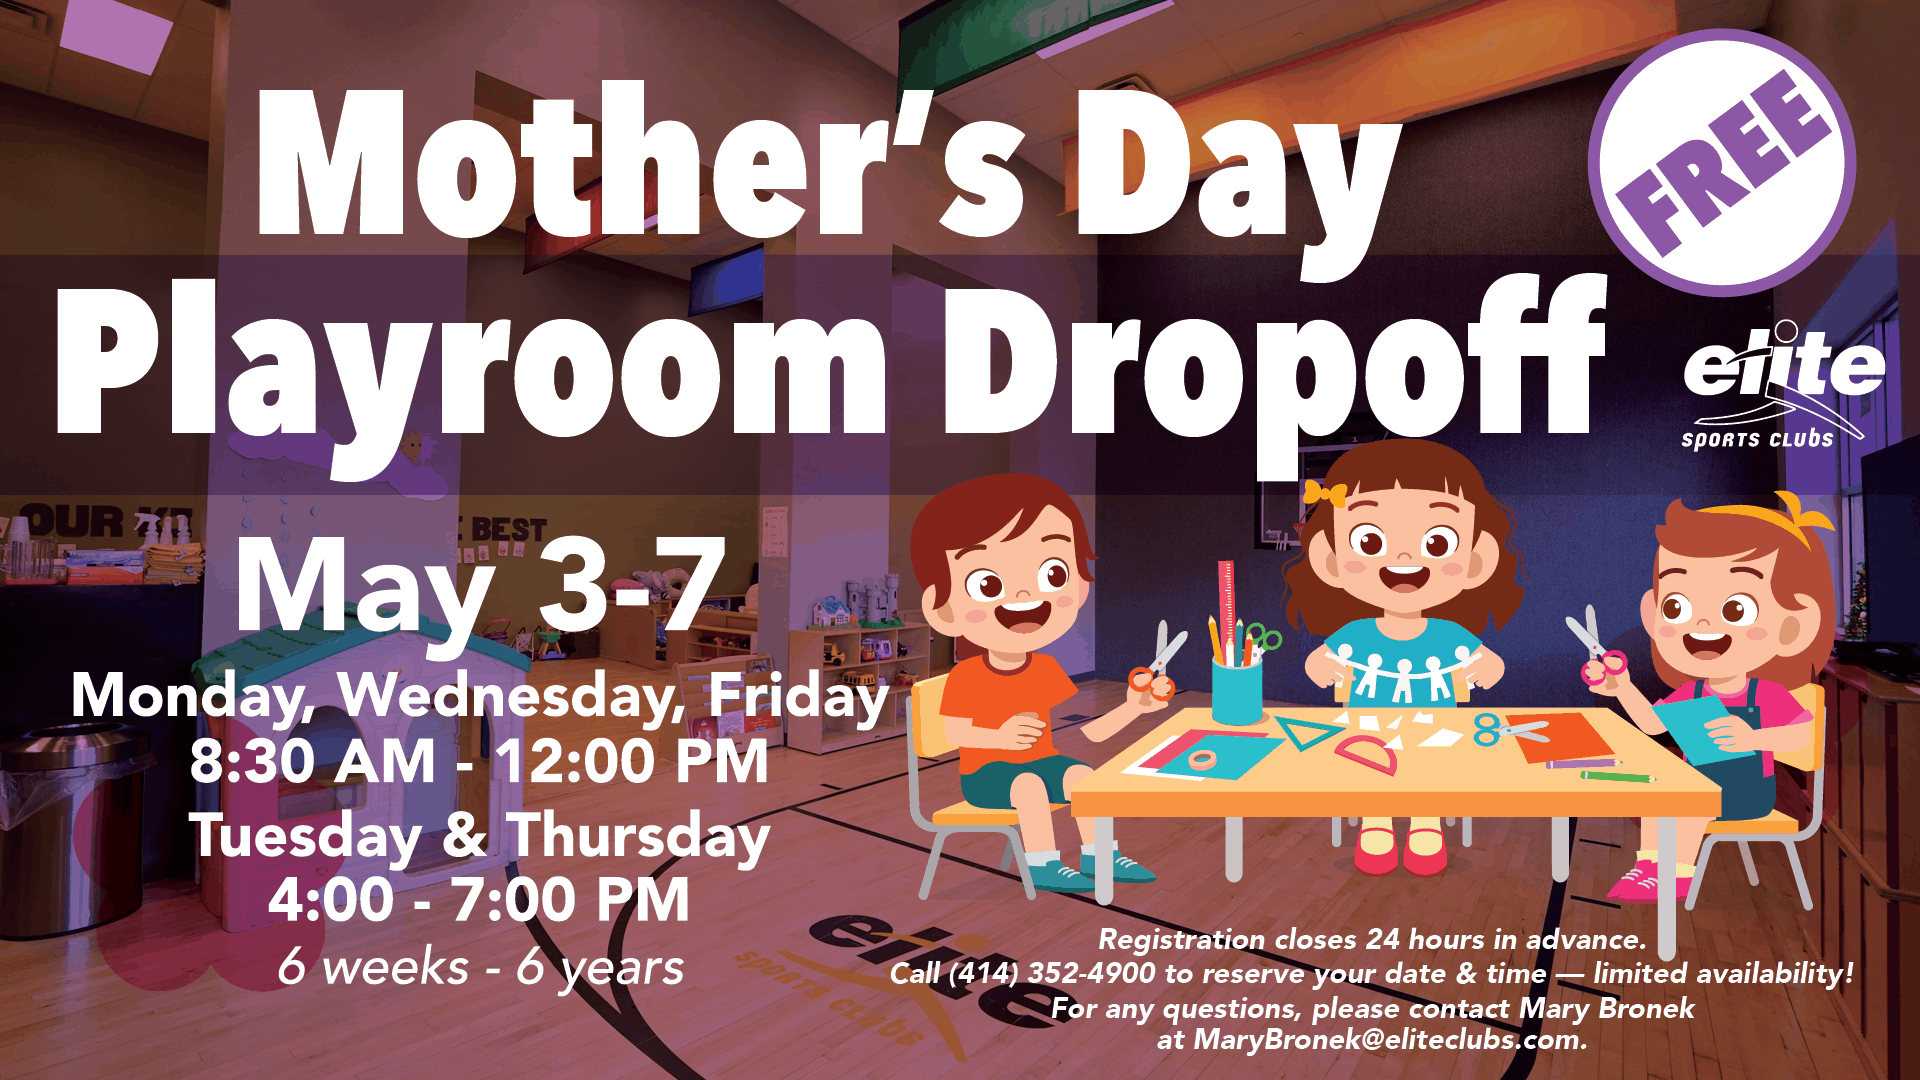 Mother's Day - Free Playroom Drop Off - Elite River Glen - May 2021